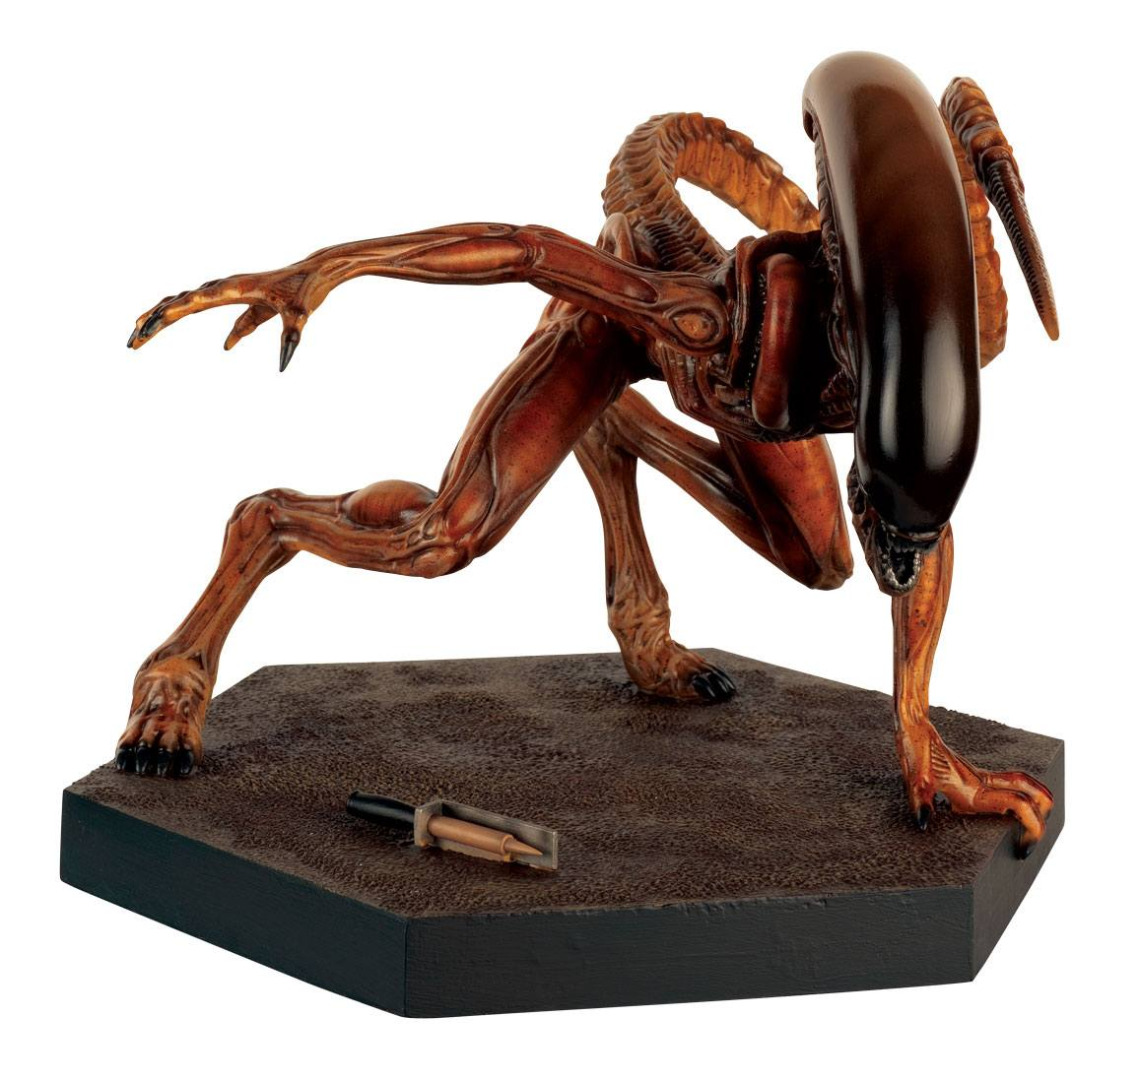 The Alien & Predator FigurineCollection Special Statue MegaRunner Xenomorph